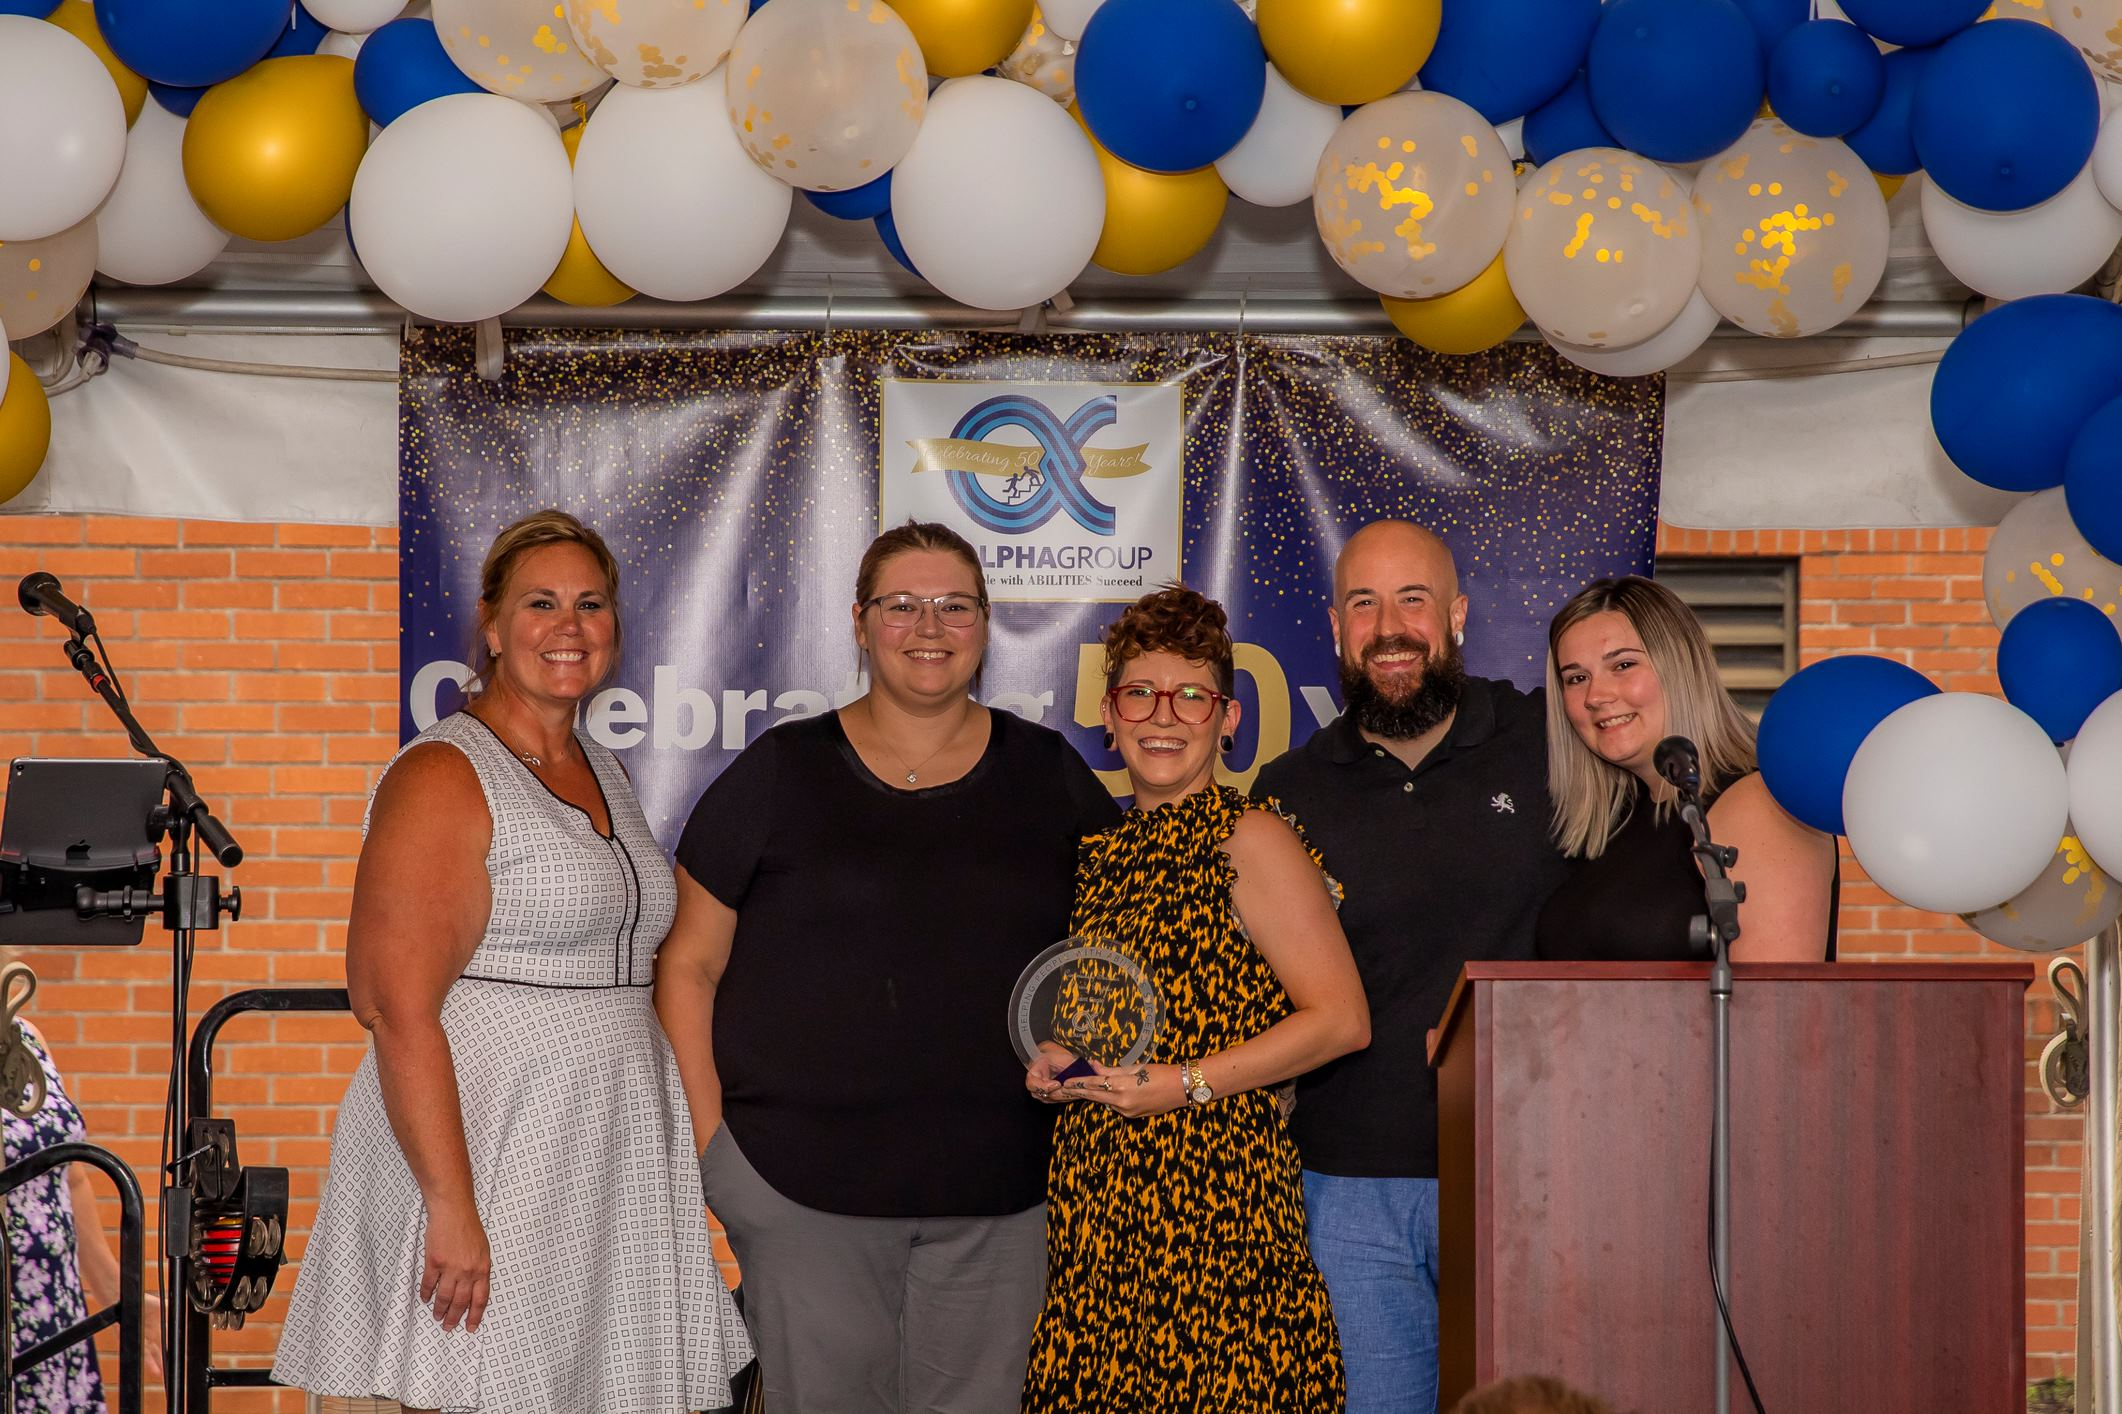 2021 Community Services Award from The Alpha Group